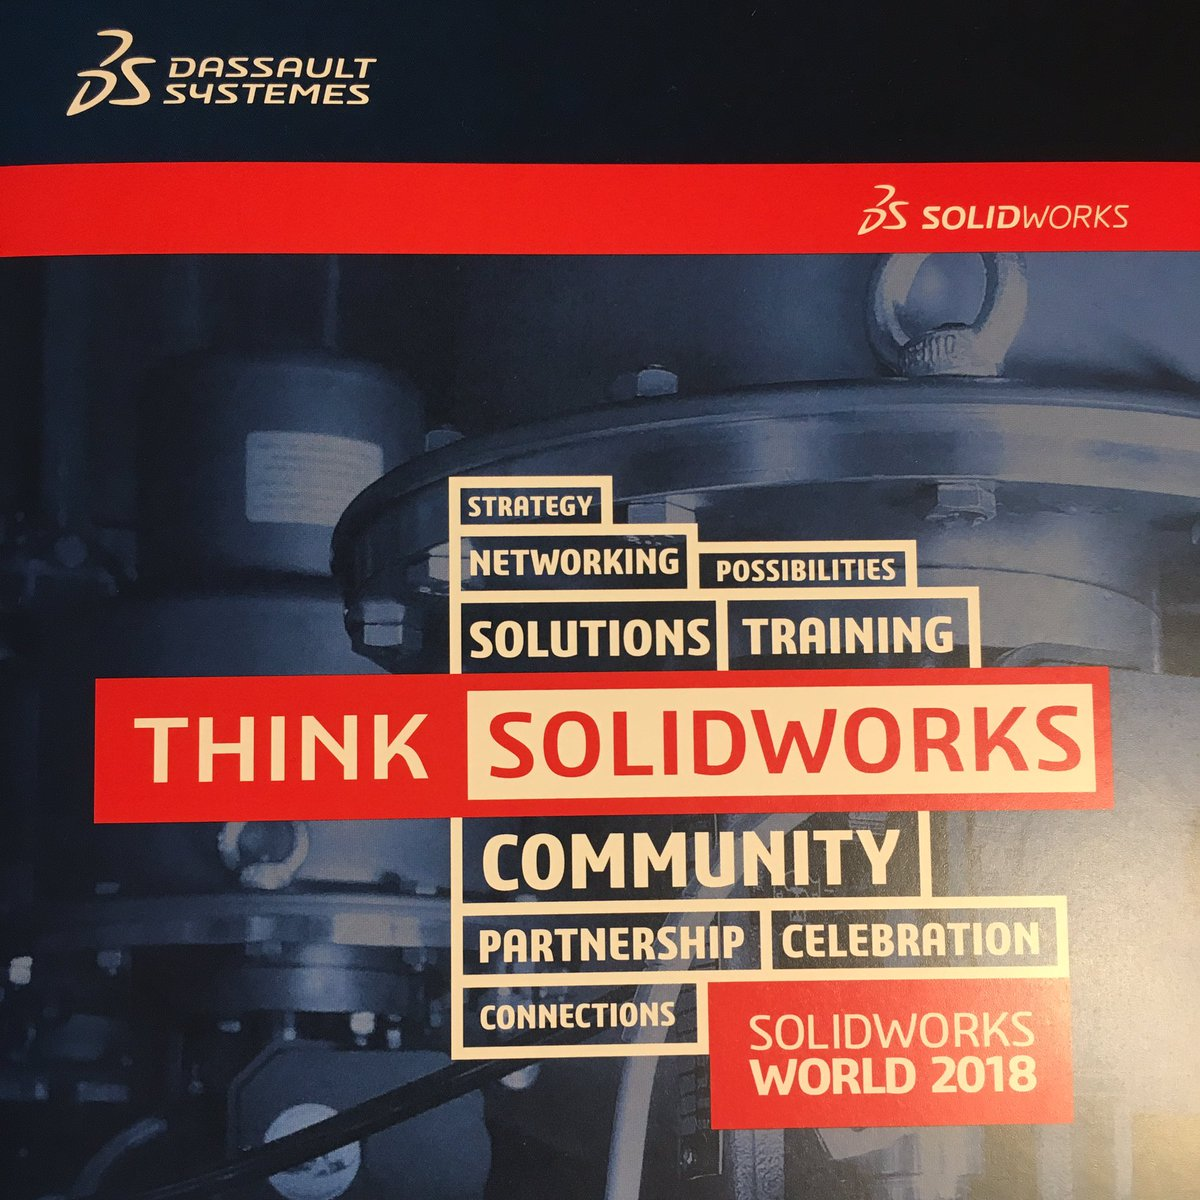 What I Learned at SolidWorks World 2018